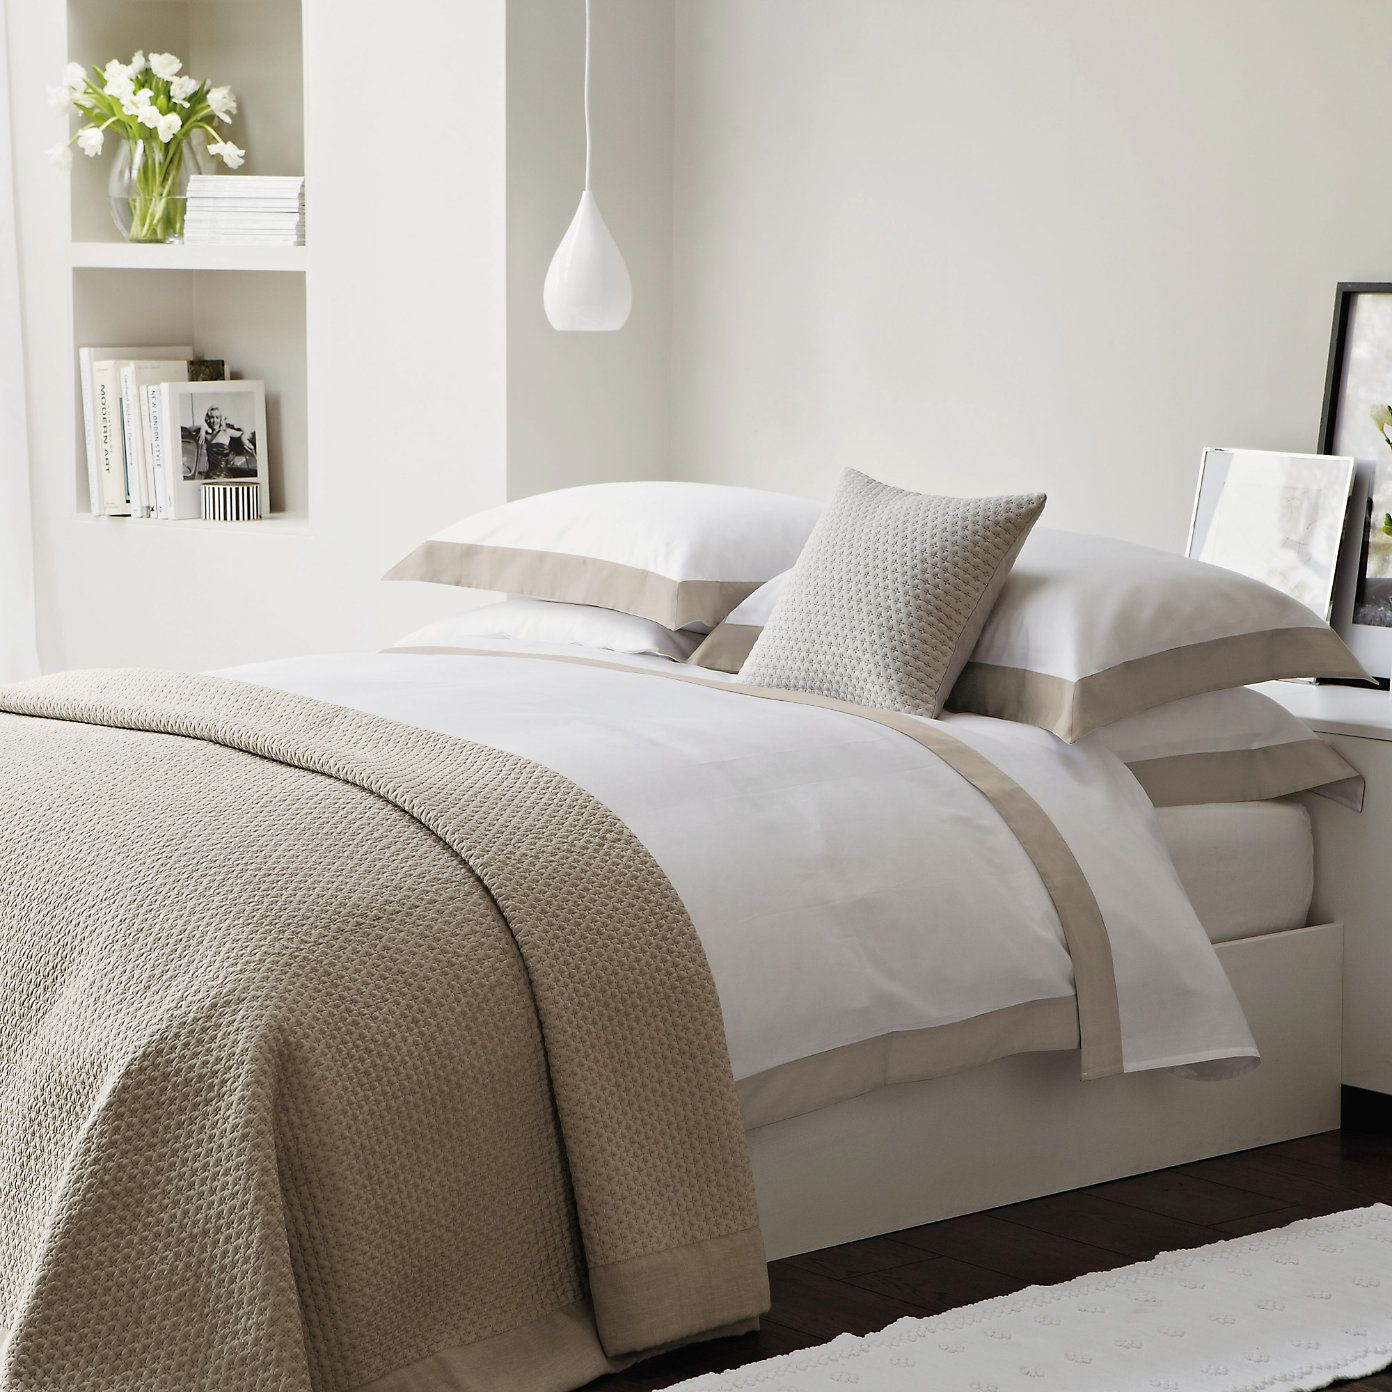 White Taupe Bedding Bed Linens Luxury Bed Taupe Bedding